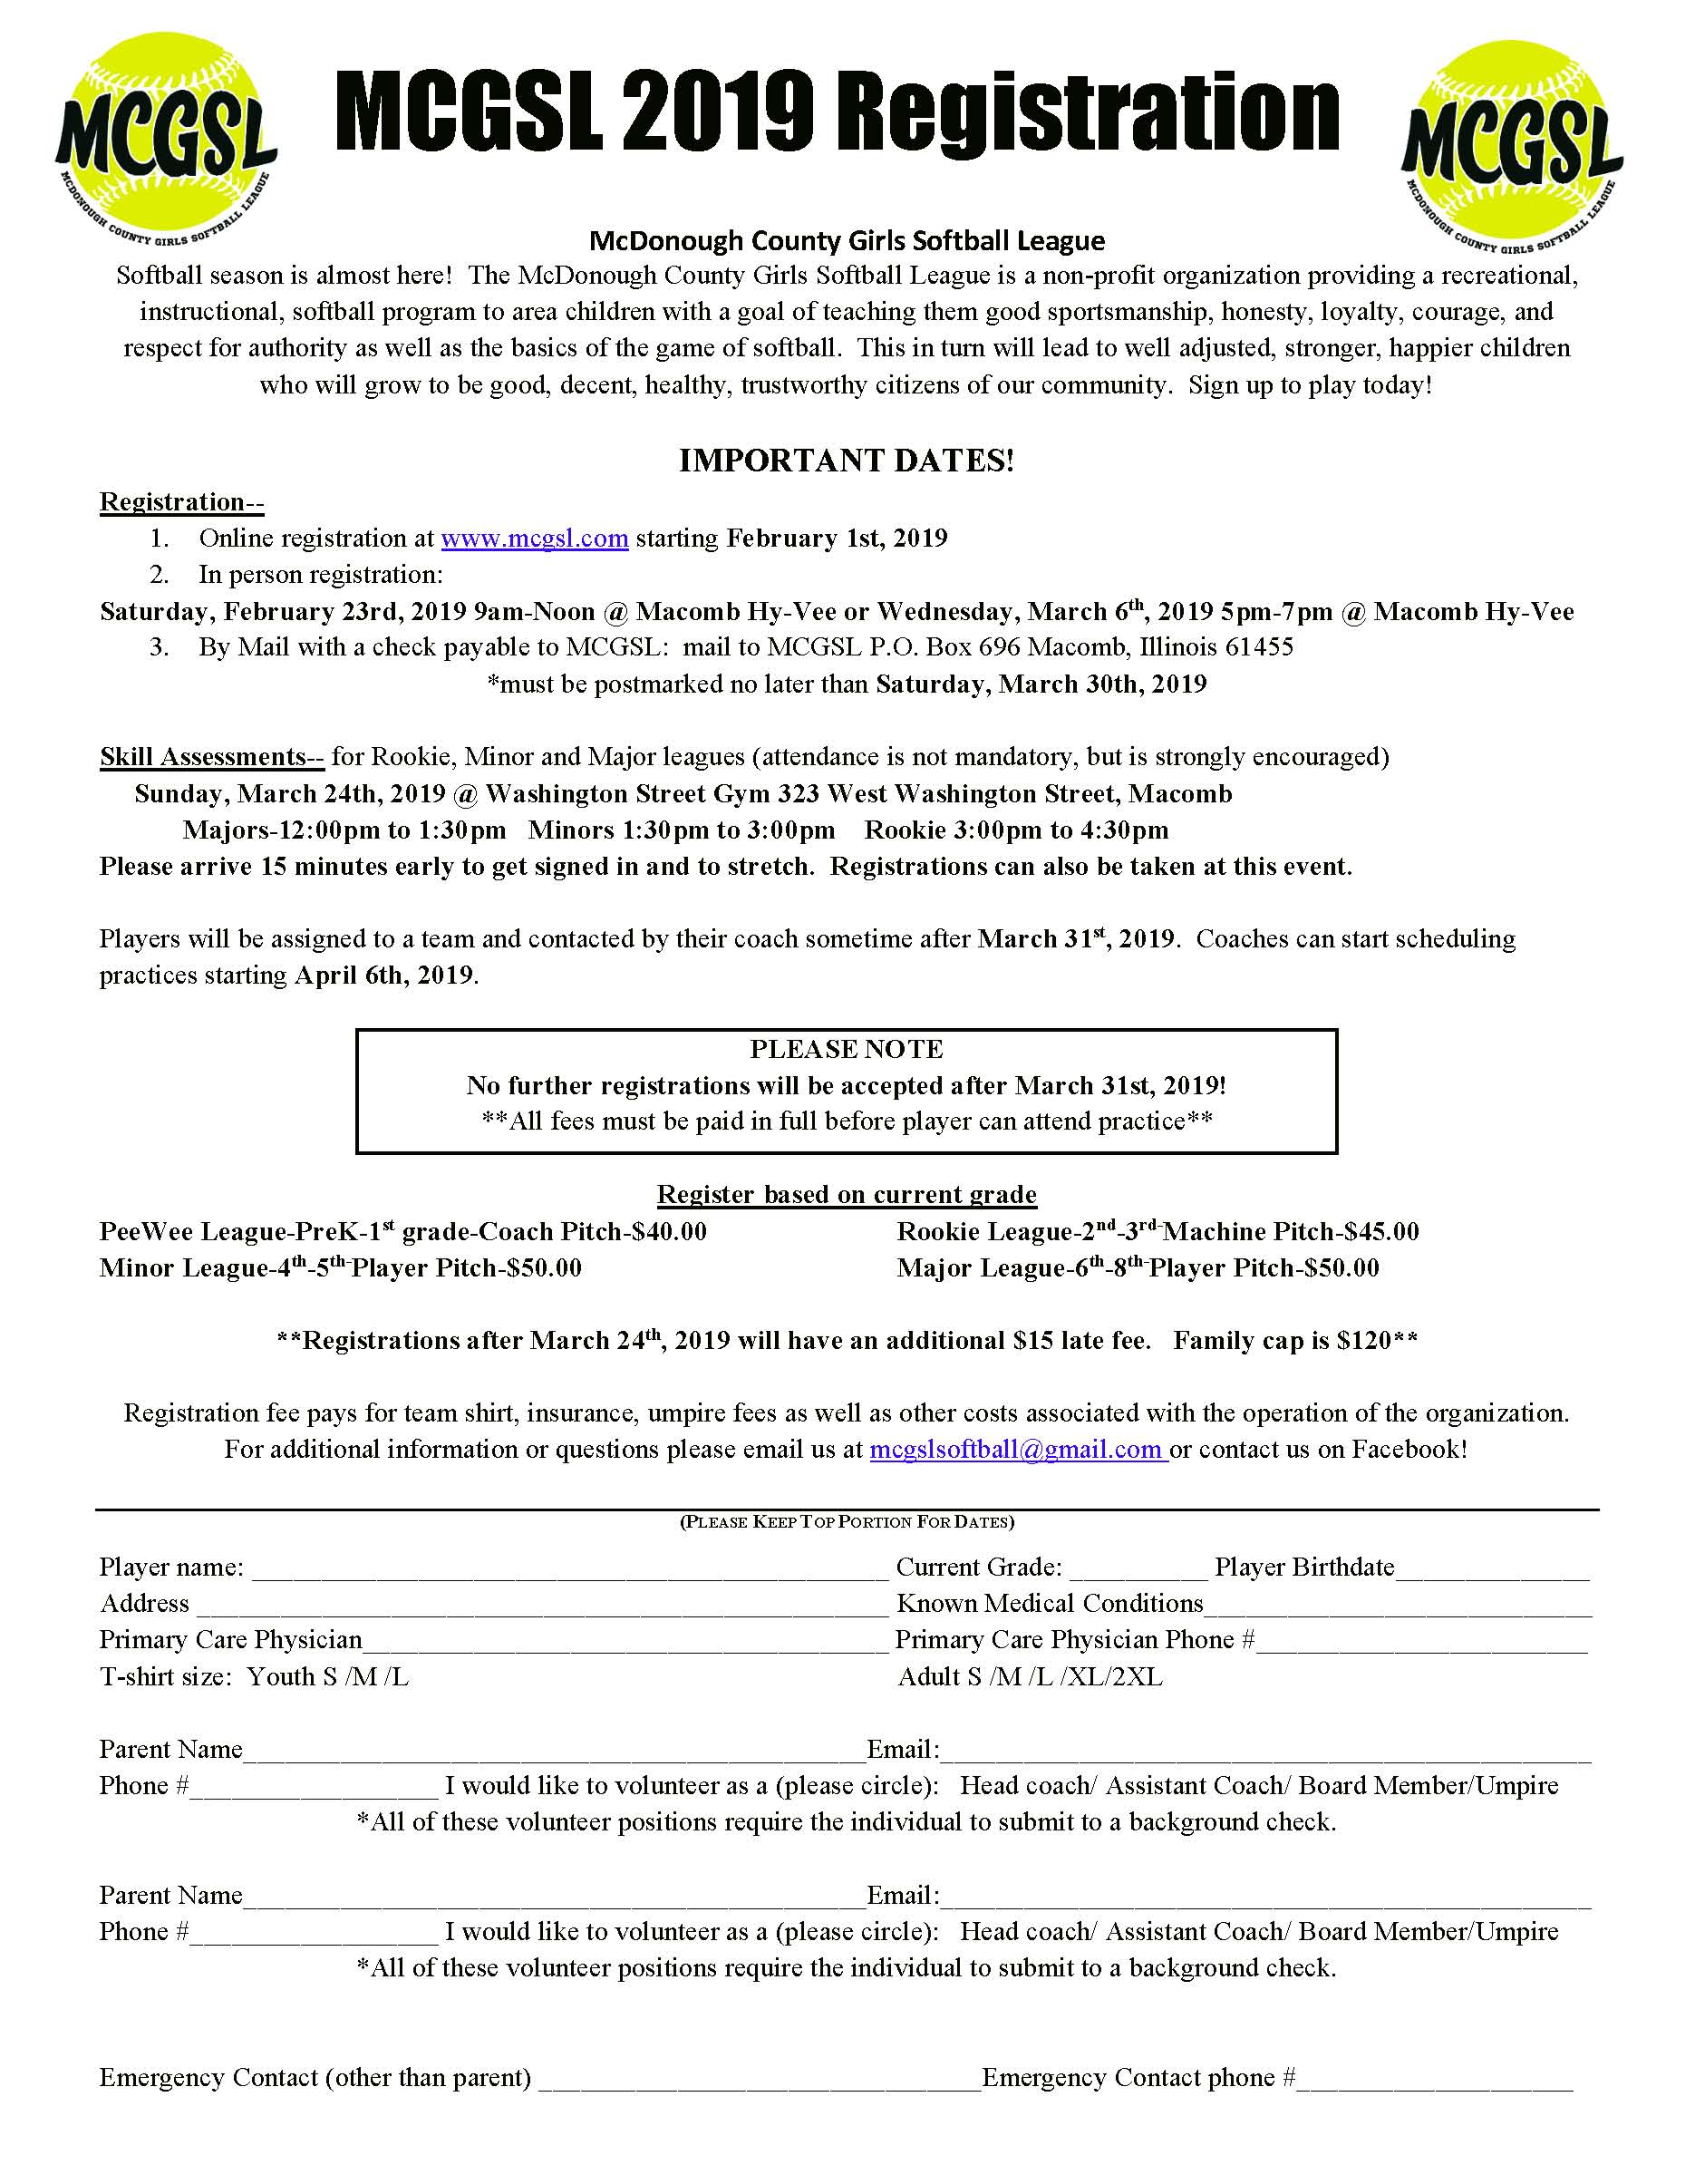 MCGSL 2019 Registration Form